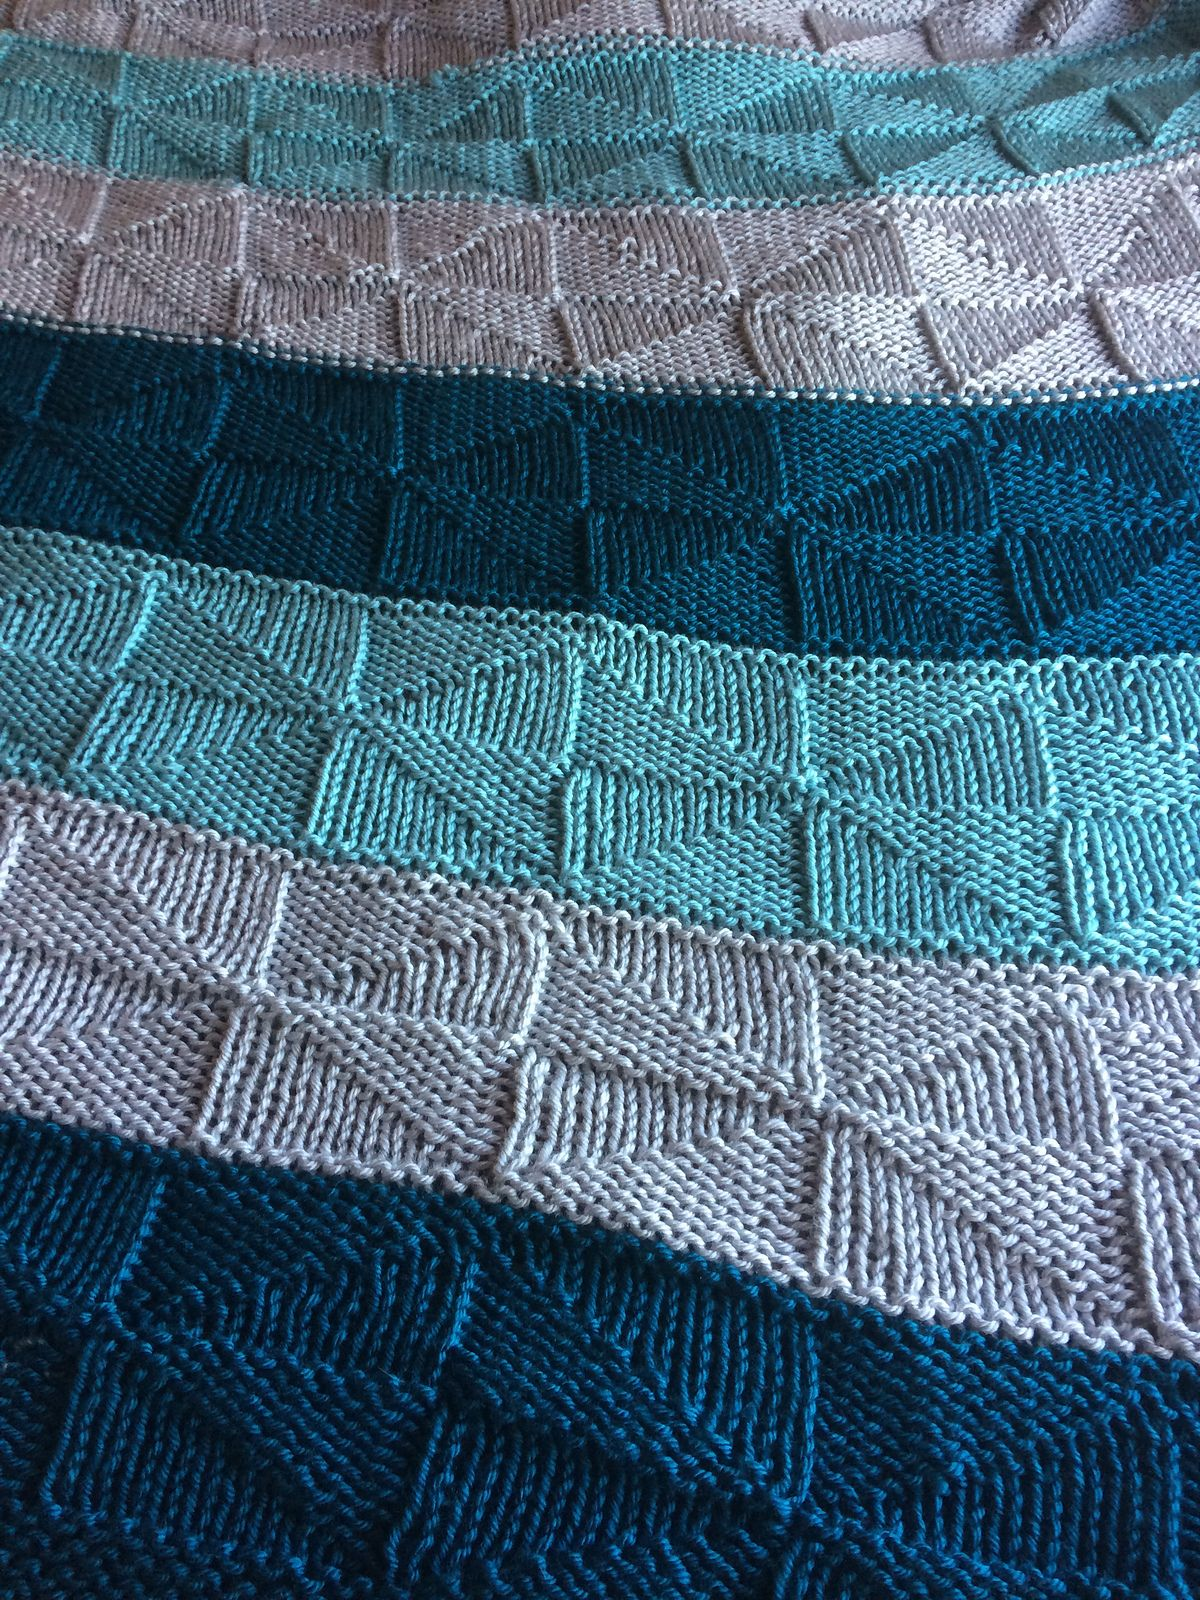 Free Knitting Pattern For Reversible Windmill Blanket This Easy